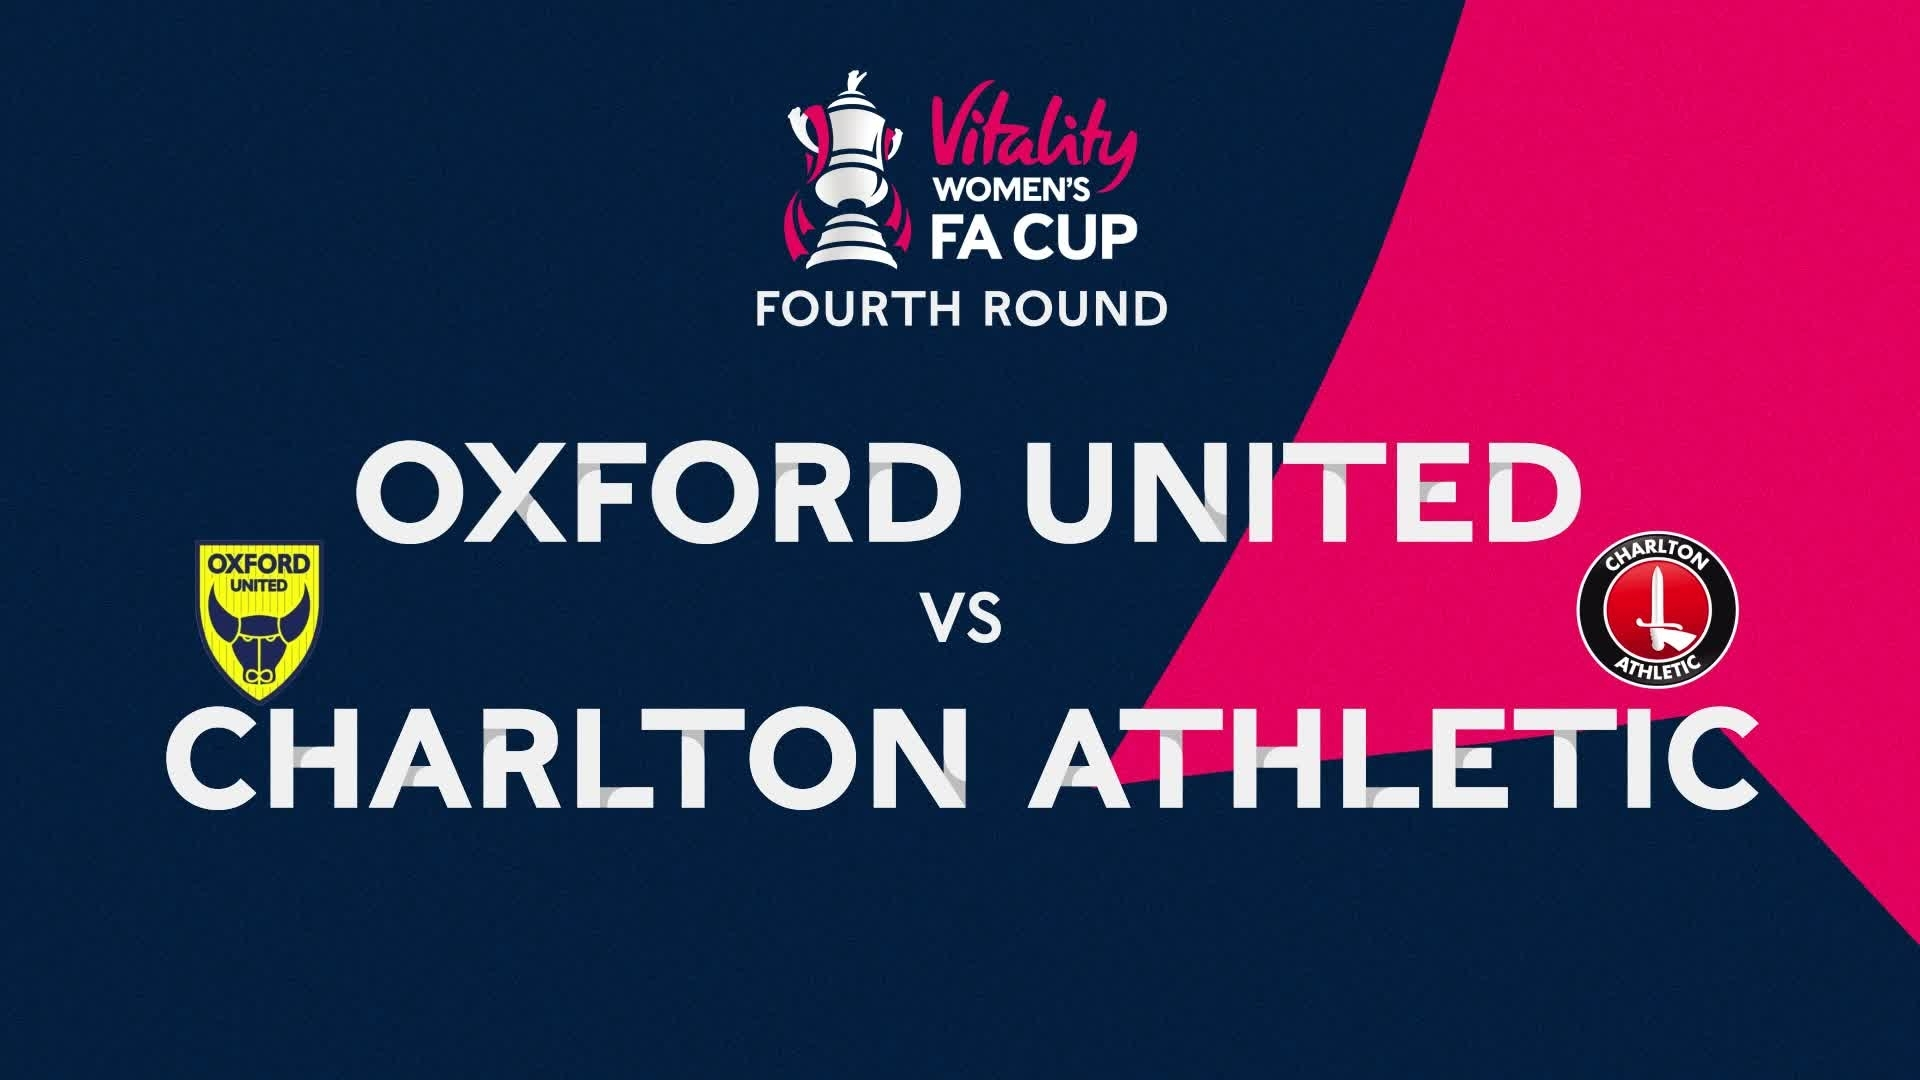 WOMEN'S TEAM | Oxford United 1 Charlton 2 (April 2021)